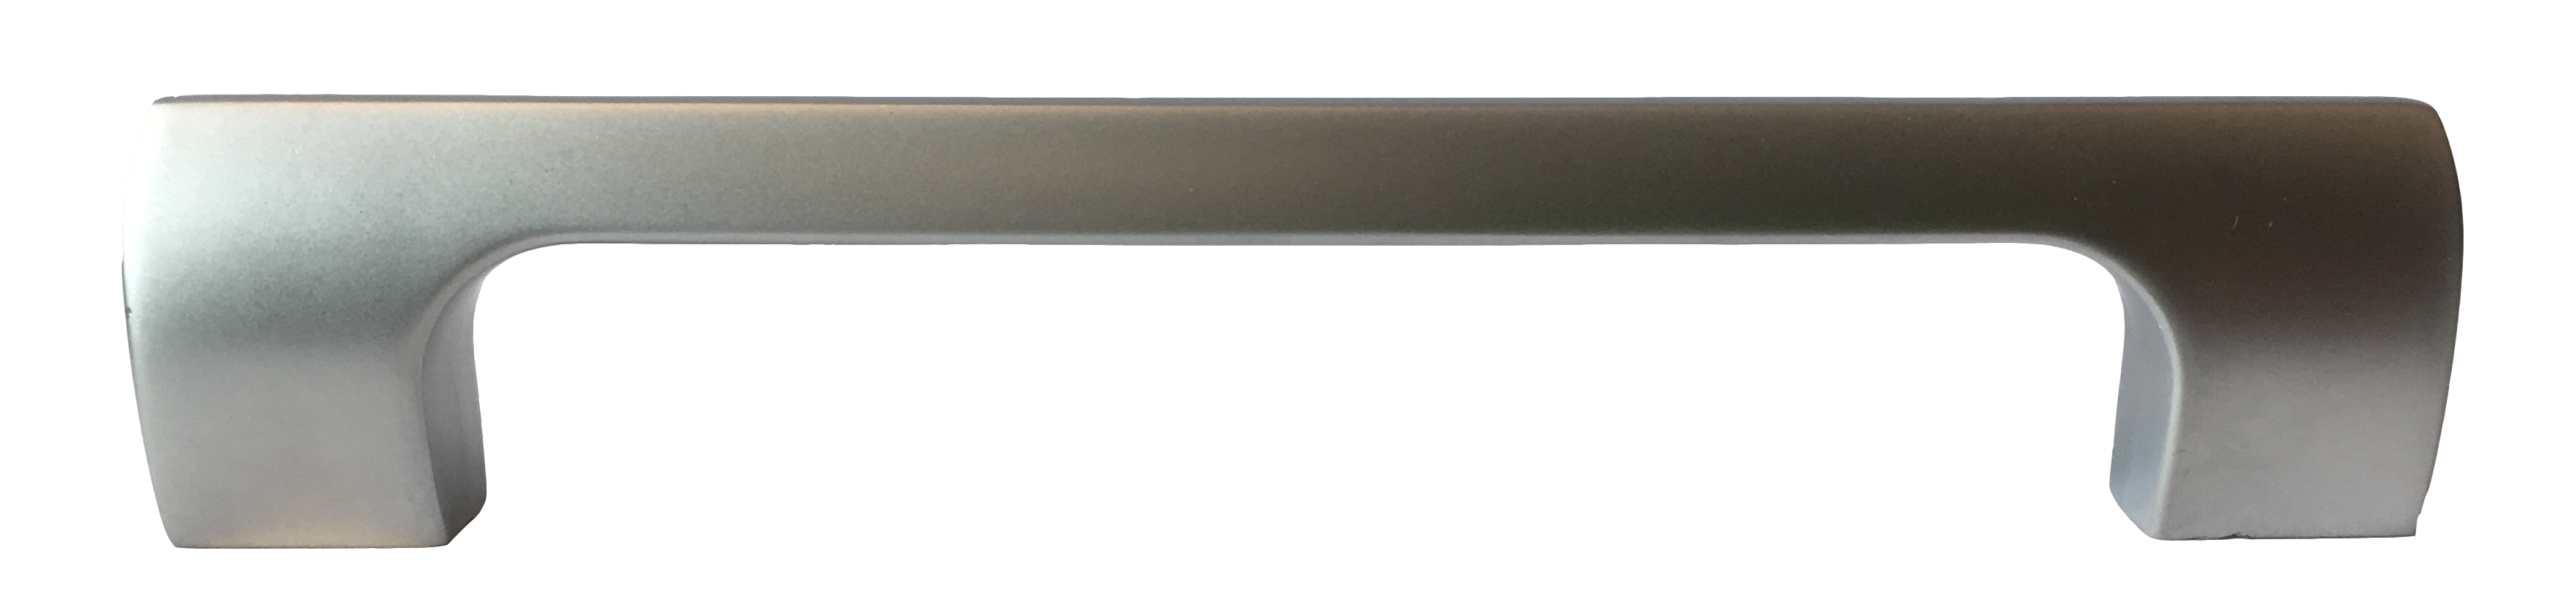 UZ-814128-05 Side View for Kitchen Cabinets